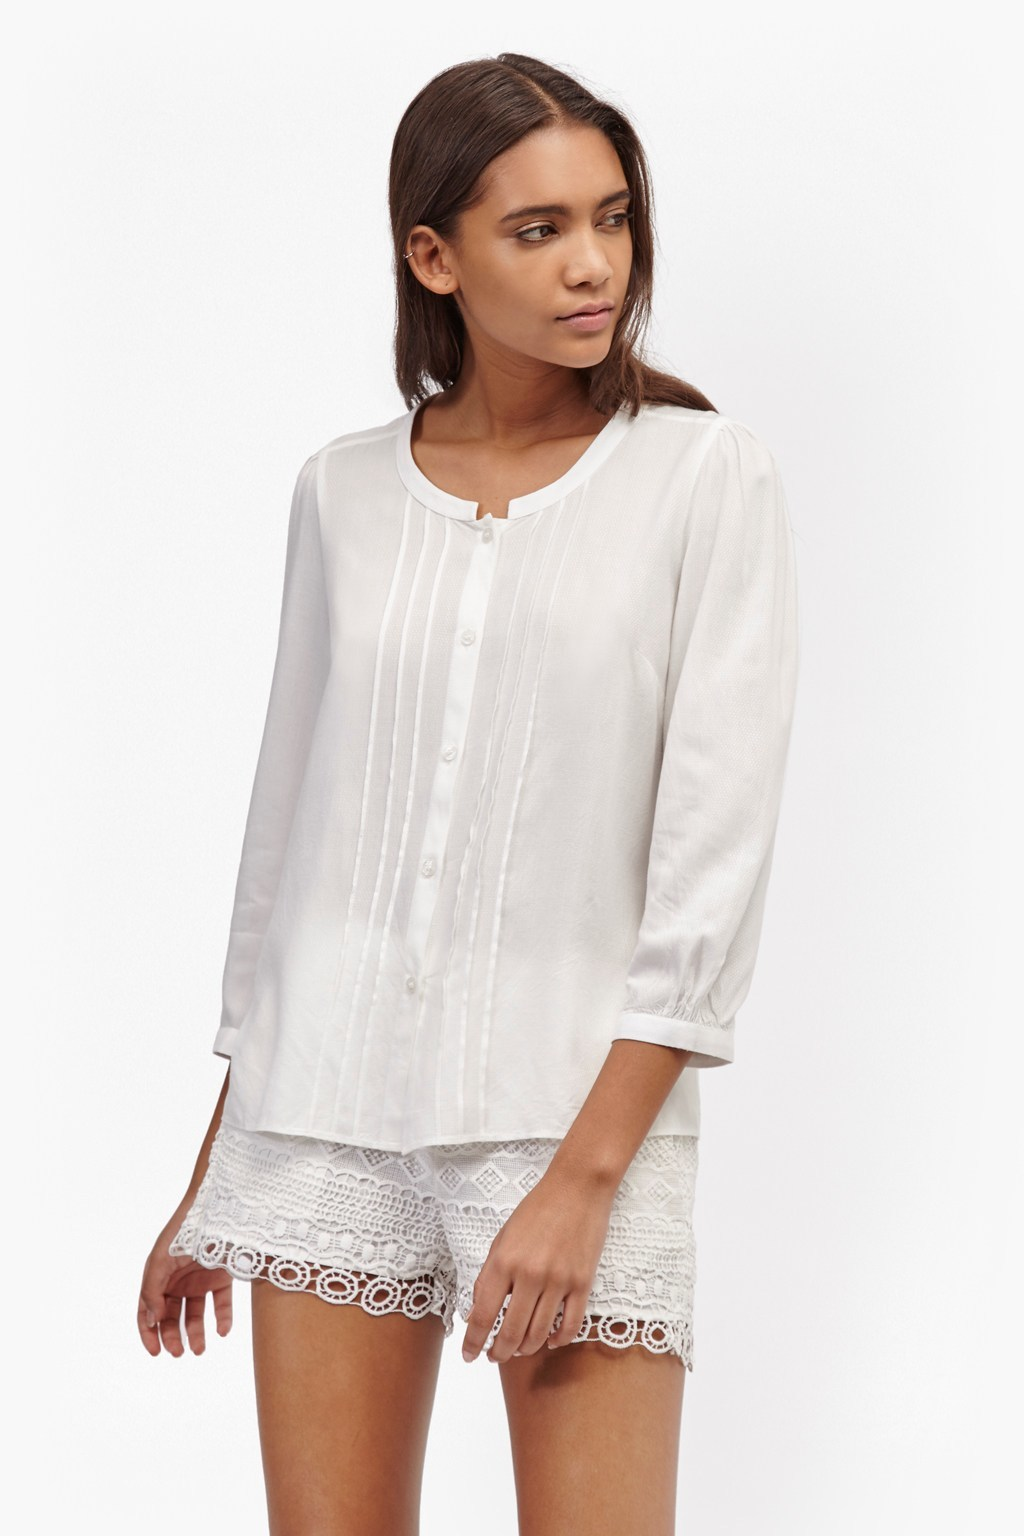 Empire Dot Embroidered Blouse Summer White - pattern: plain; style: blouse; bust detail: subtle bust detail; predominant colour: white; occasions: casual; length: standard; neckline: collarstand; fibres: cotton - 100%; fit: straight cut; sleeve length: 3/4 length; sleeve style: standard; texture group: cotton feel fabrics; pattern type: fabric; season: s/s 2016; wardrobe: basic